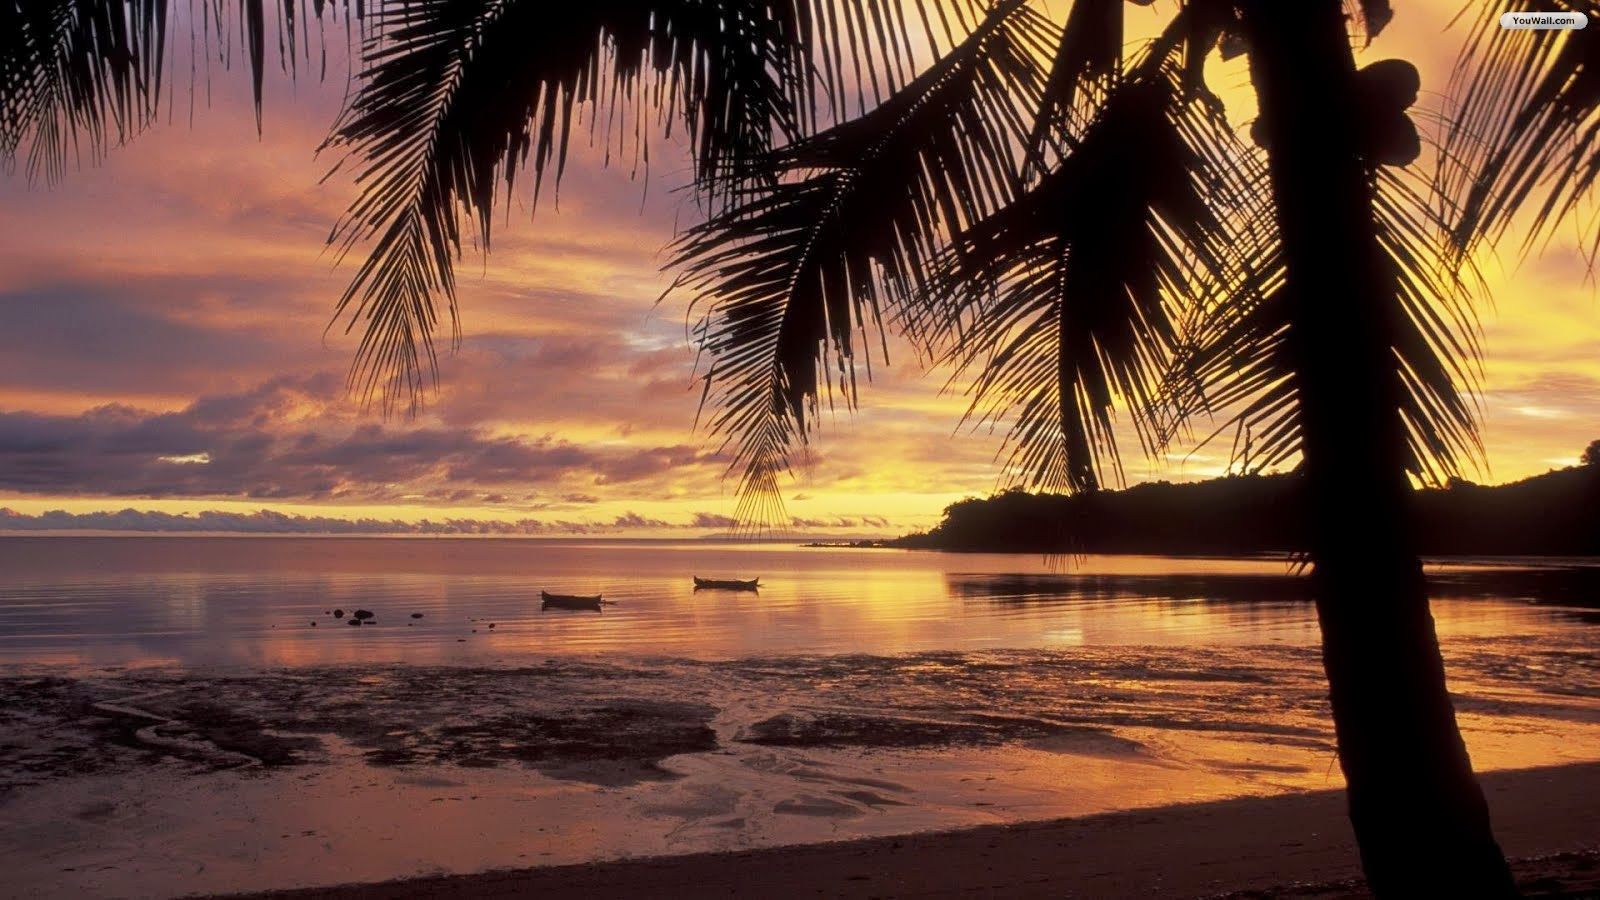 beach picture Beautiful Beach Sunset Wallpaper Wallpapers 1600x900